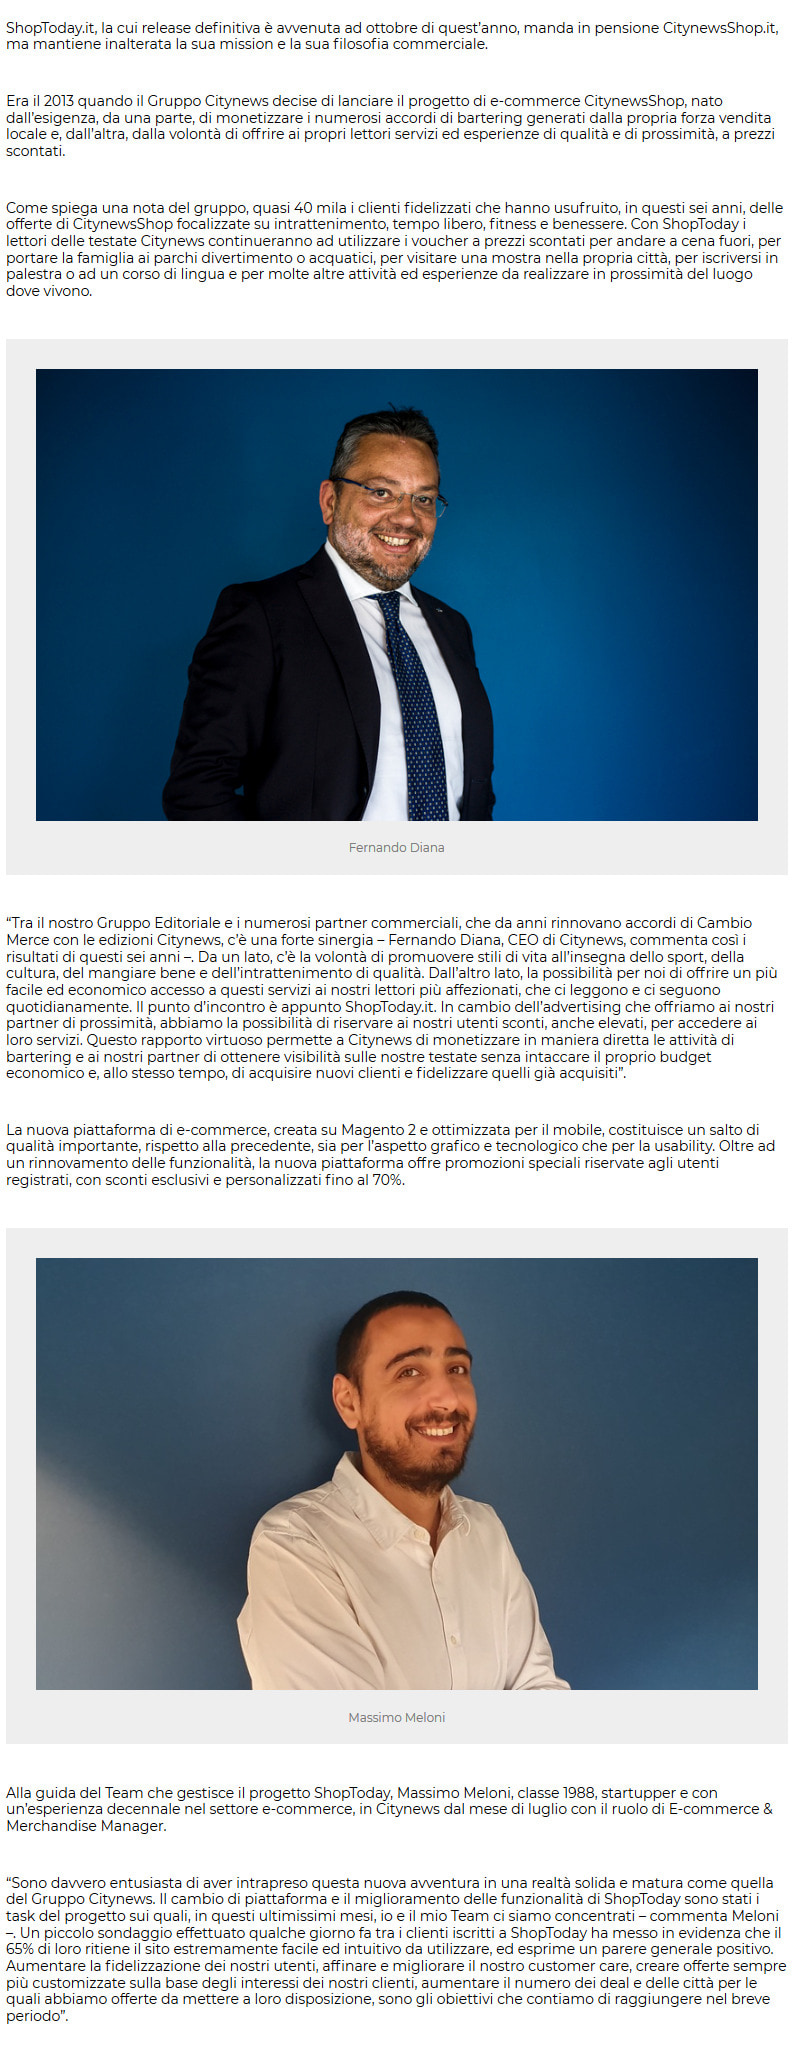 Citynews arruola Massimo Meloni come responsabile E-commerce e rilancia ShopToday.it - PrimaOnline, 6 novembre 2019-2